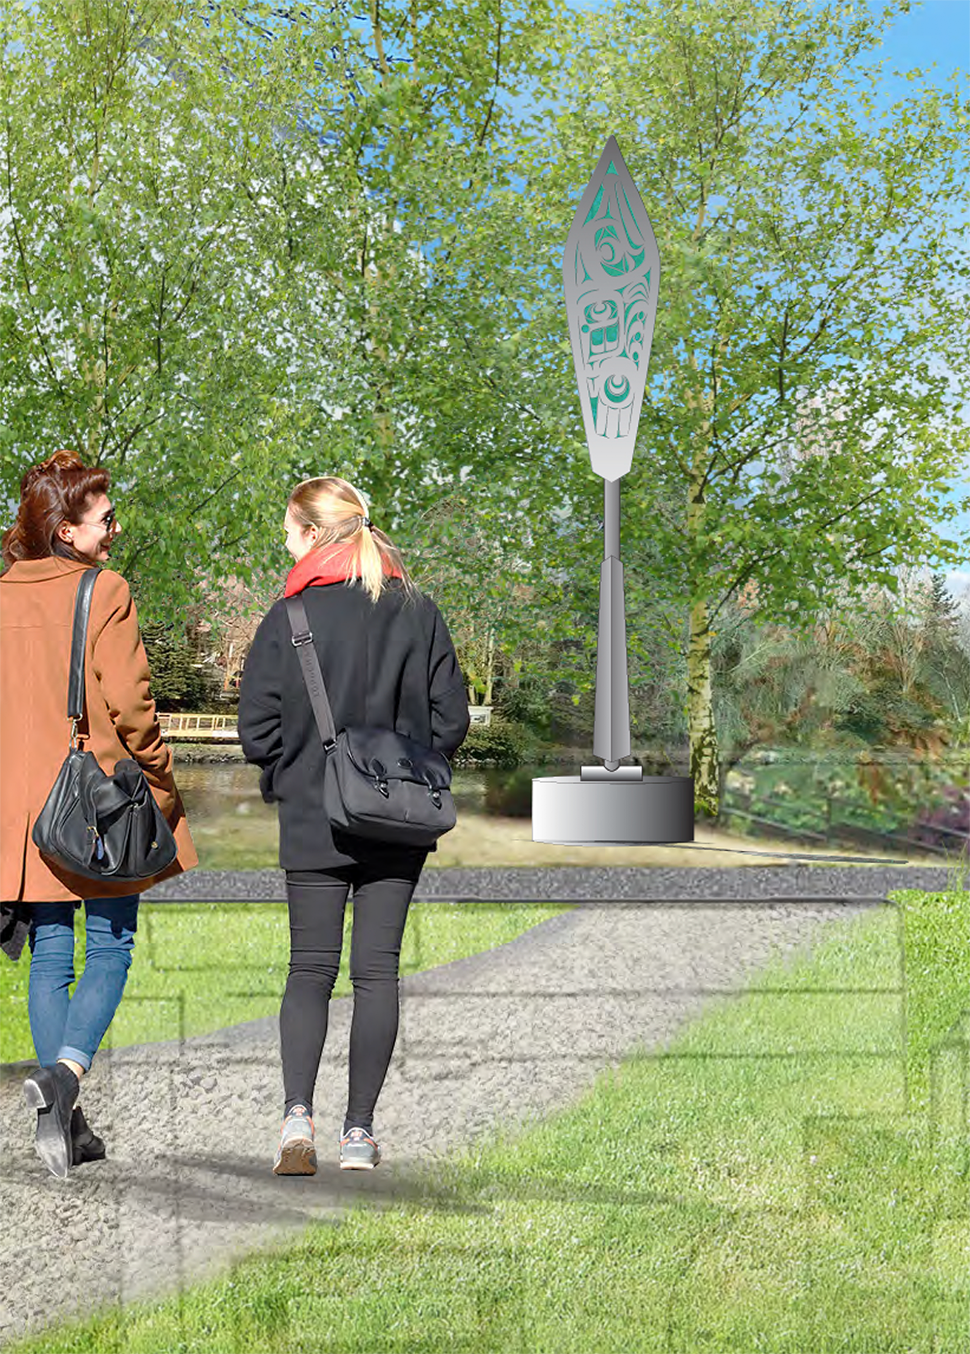 A digitally enhanced image of two women walking along a gravel path between two sections of lawn on a sunny day at the park. At the end of the path is a large, steel canoe paddle that contains form design at the end of the paddle.